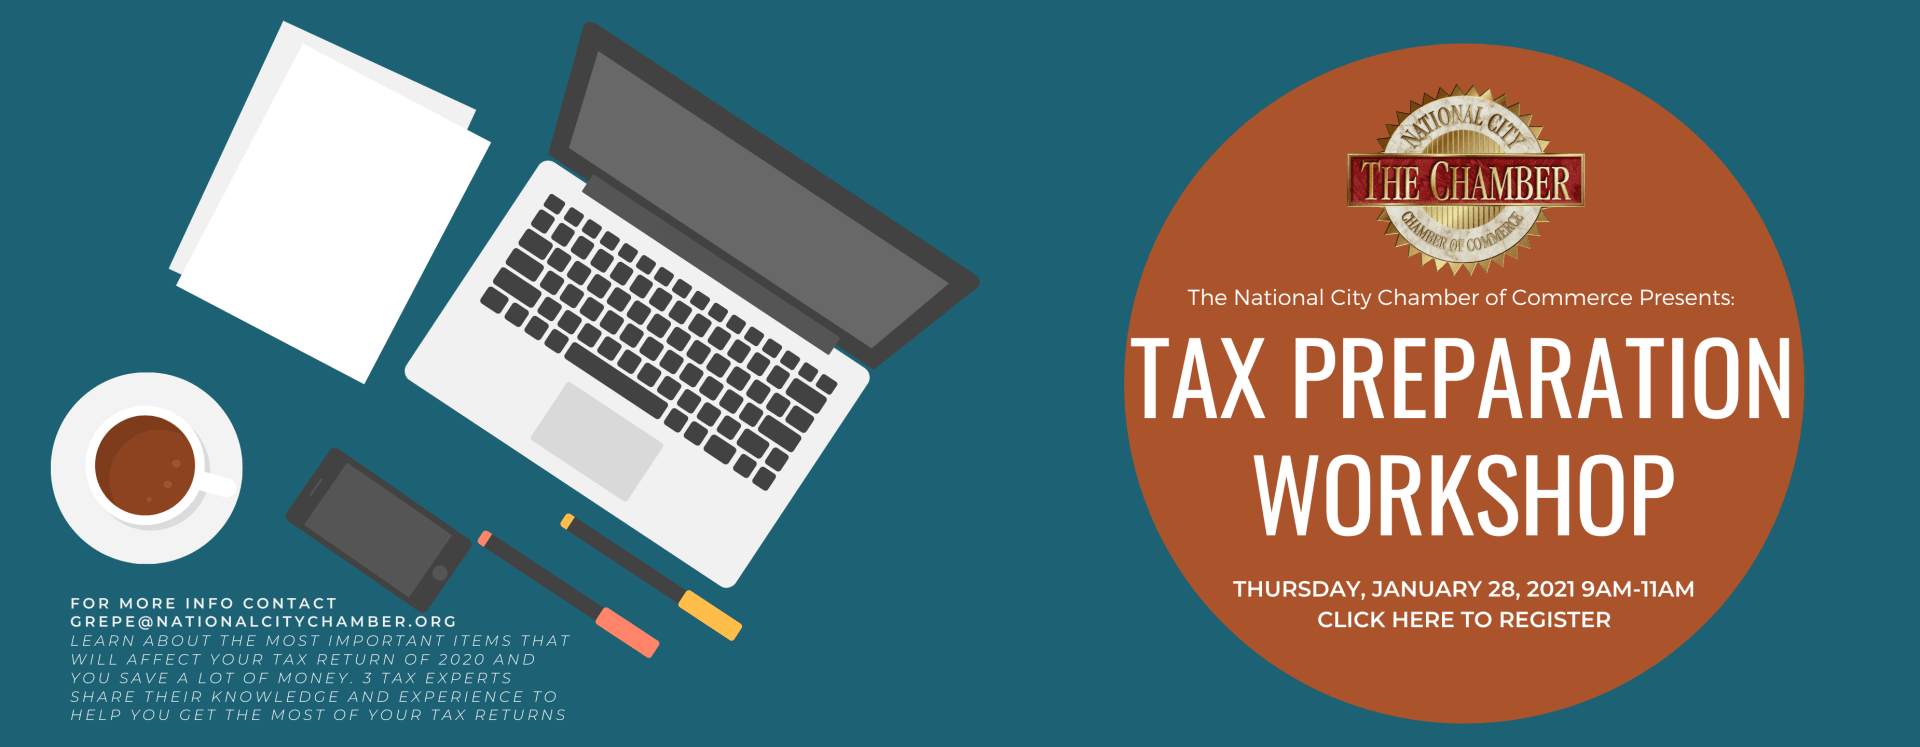 TAX-prep-workshop-web-banner-2-w1920.png